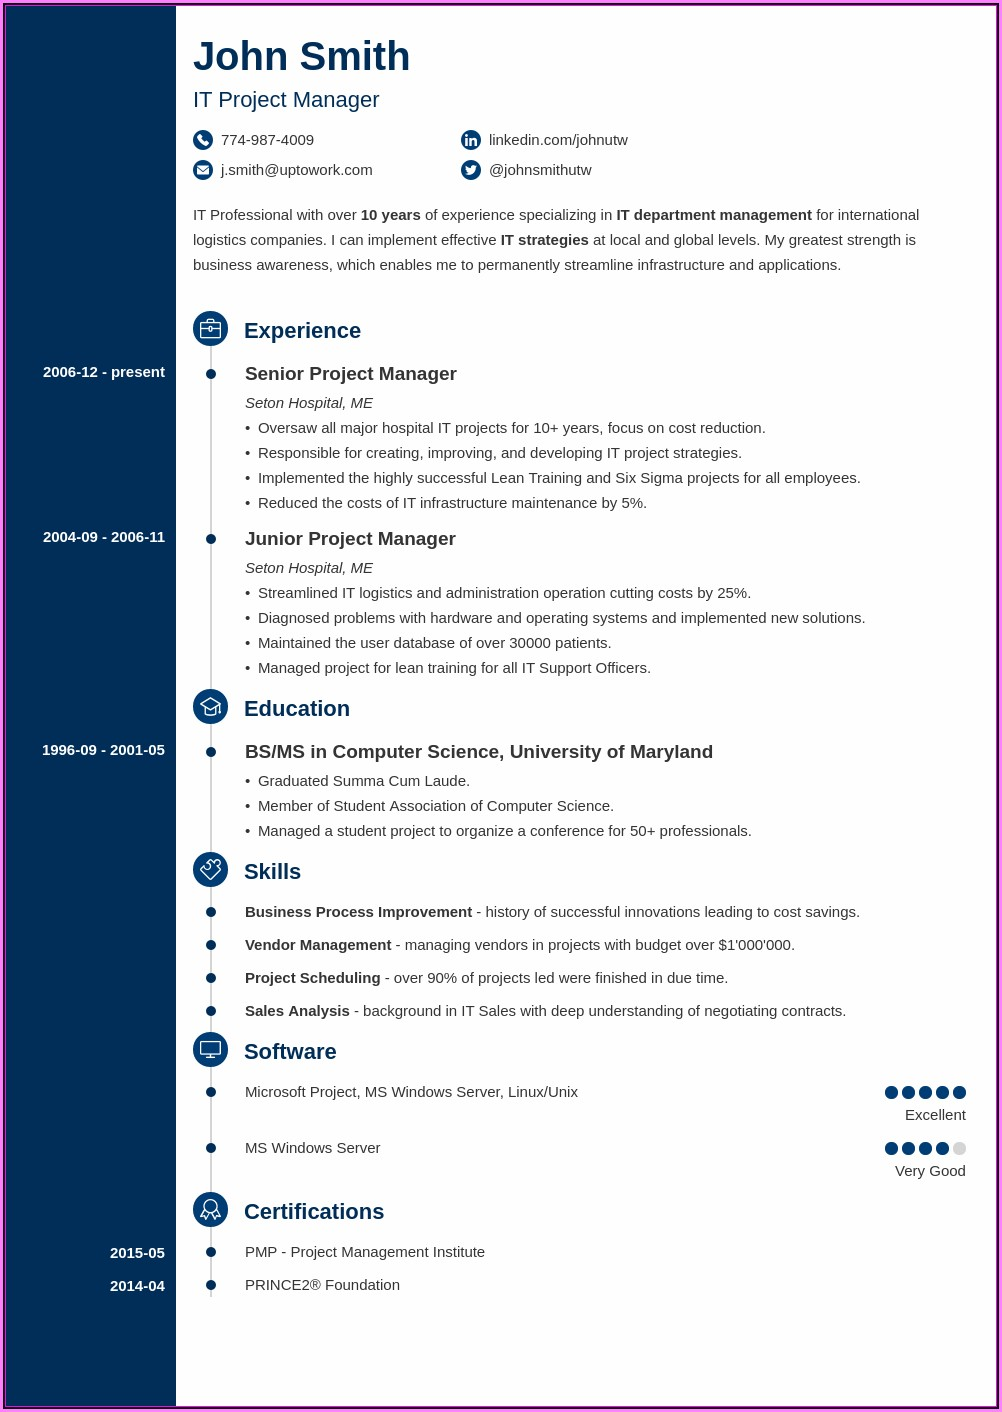 Resume Templates For Professionals Free Download